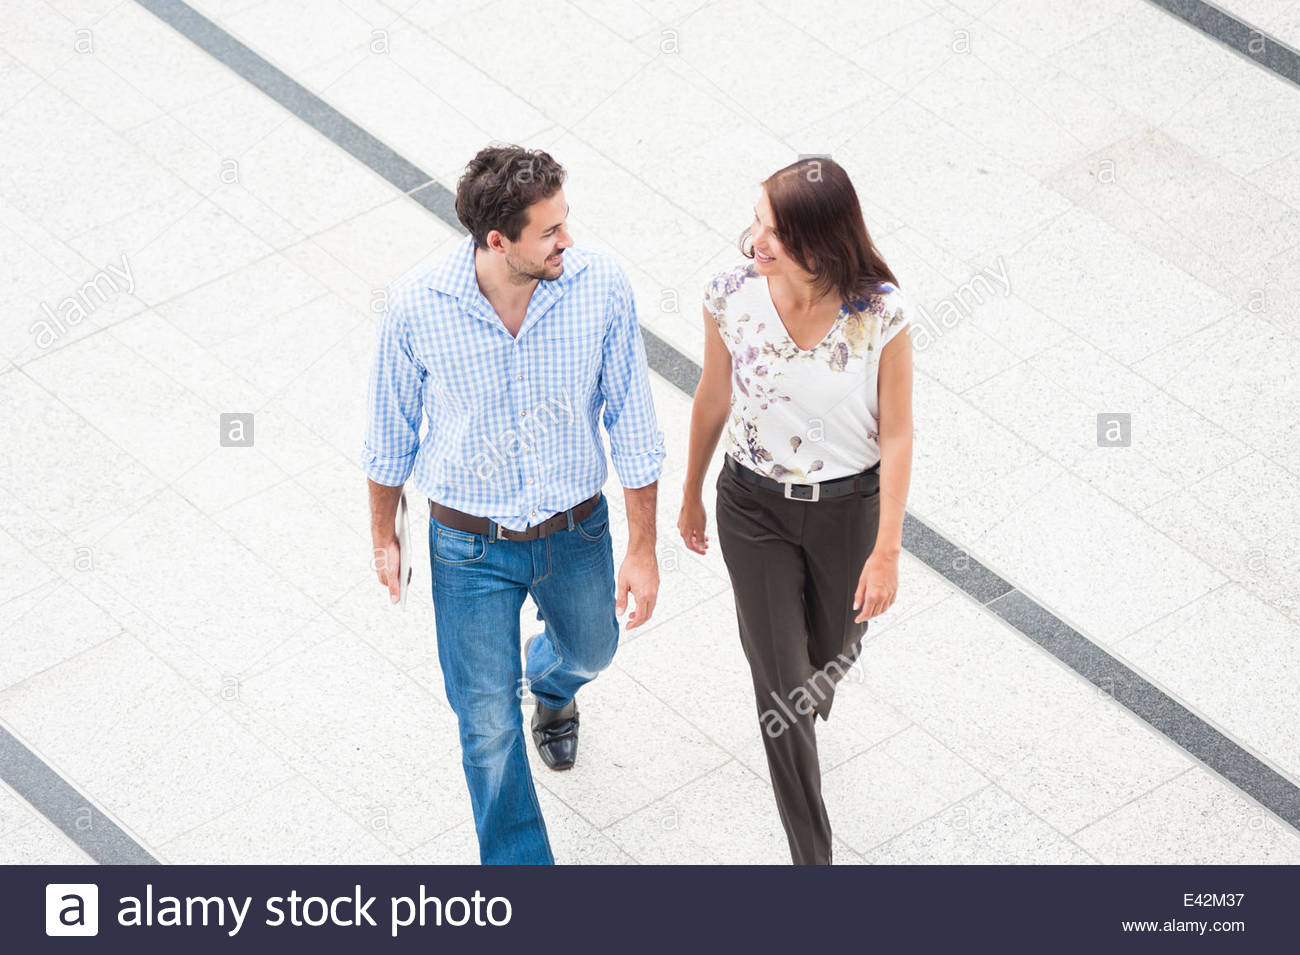 Two people walking, high angle - Stock Image